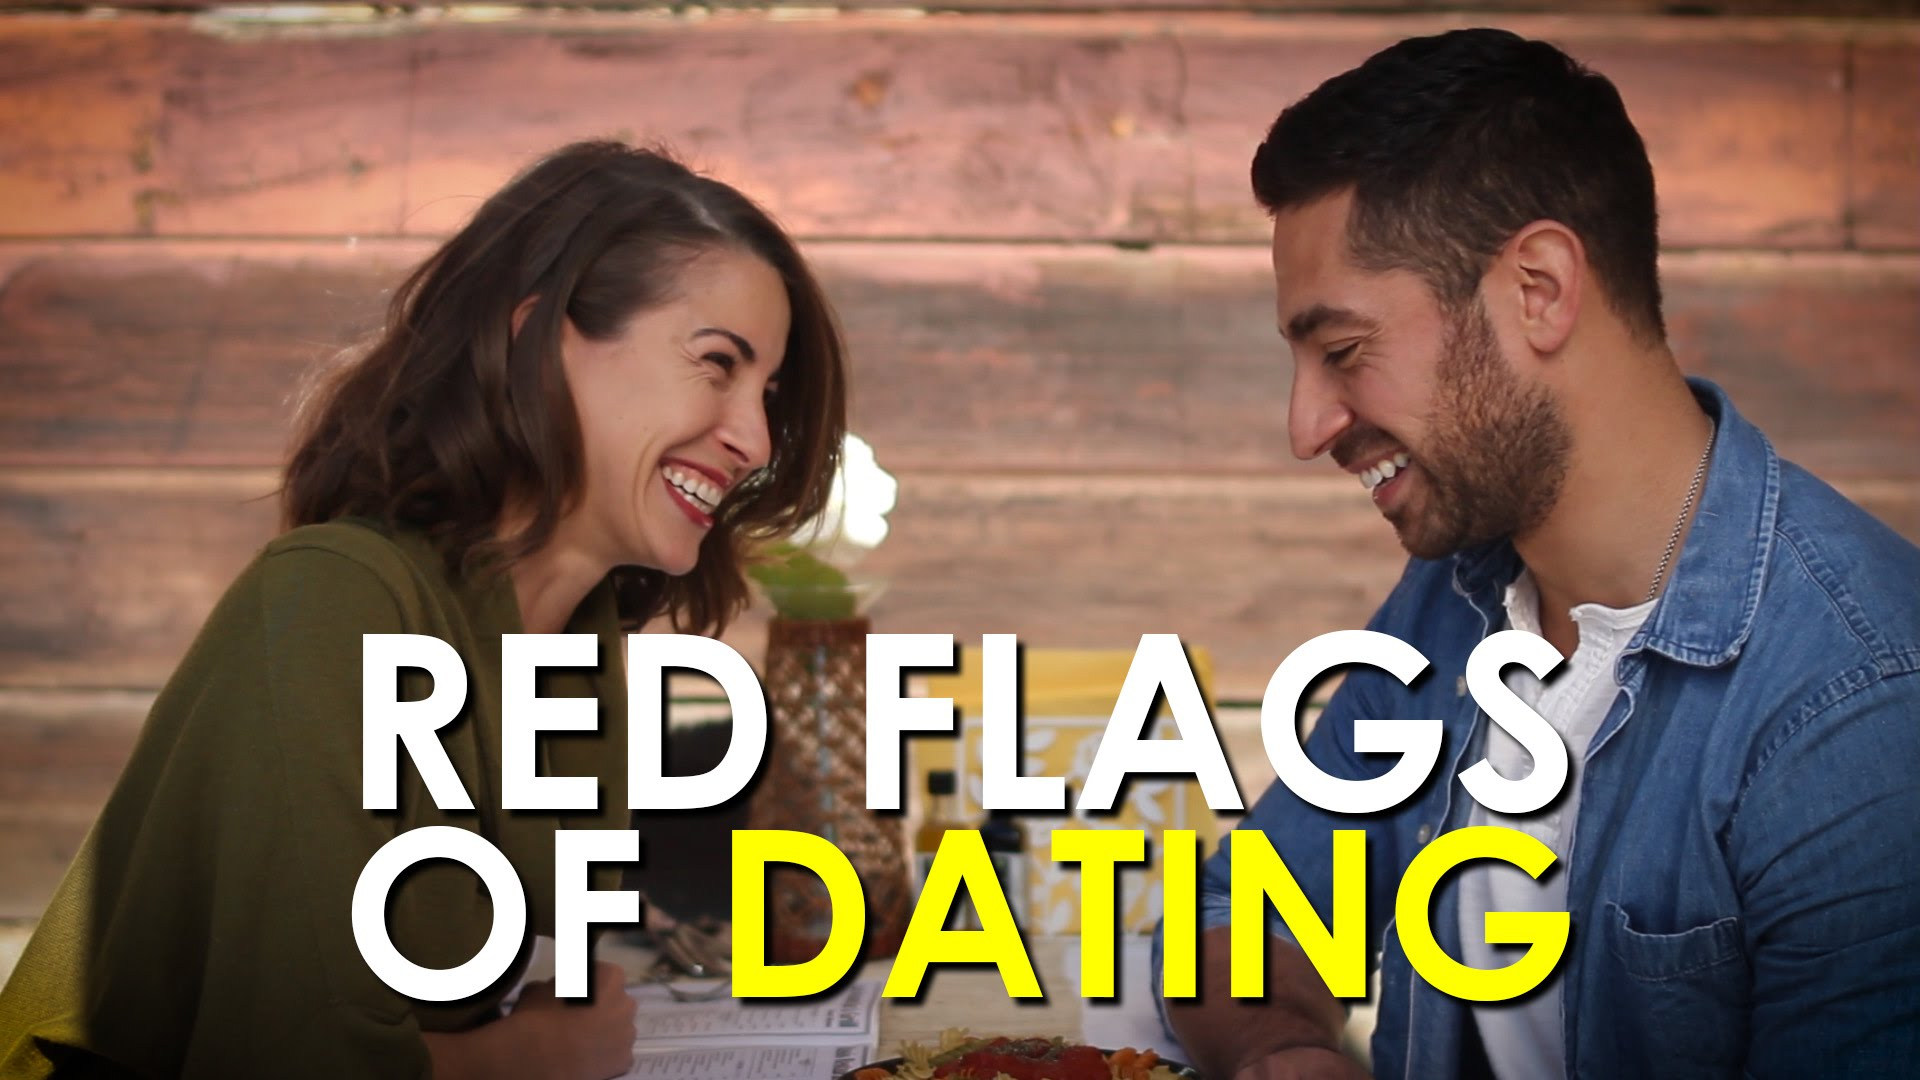 Red flags dating widower